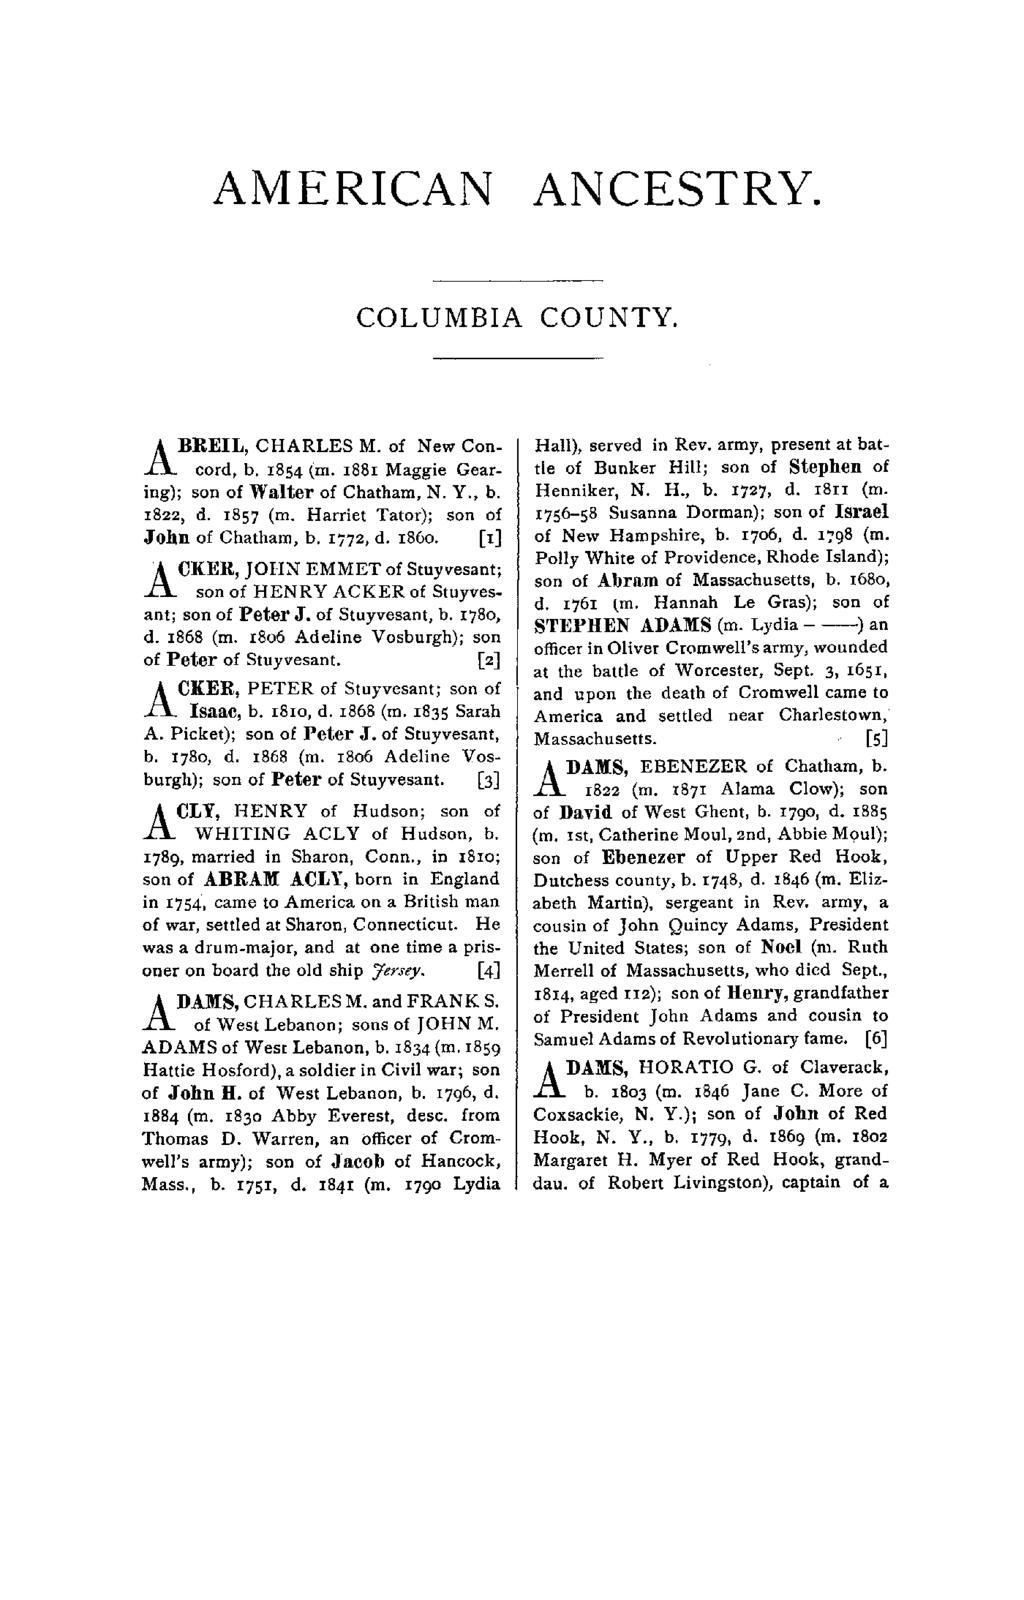 AMERICAN ANCESTRY. COLUMBIA COUNTY. ABREIL, CHARLES M. of New Concord, b. 1854 (m. 1881 Maggie Gearing); son of Walter of Chatham, N. Y., b. 1822, d. 1857 (m.